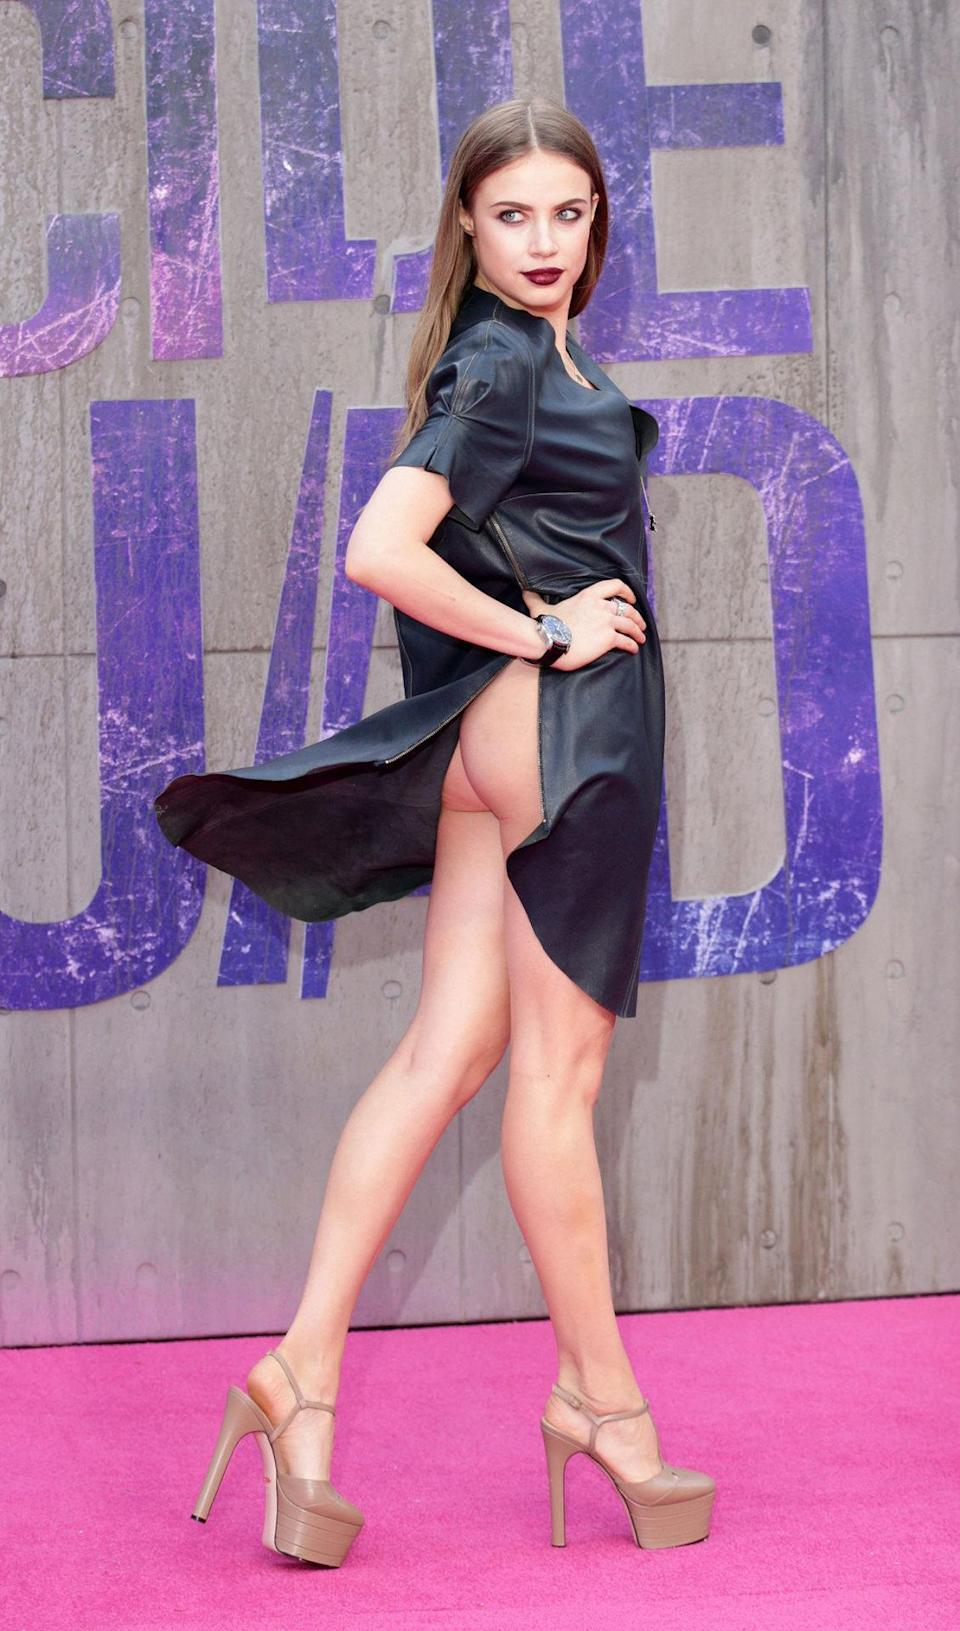 <p>The Russian model flashed her behind while posing for photographers.</p>